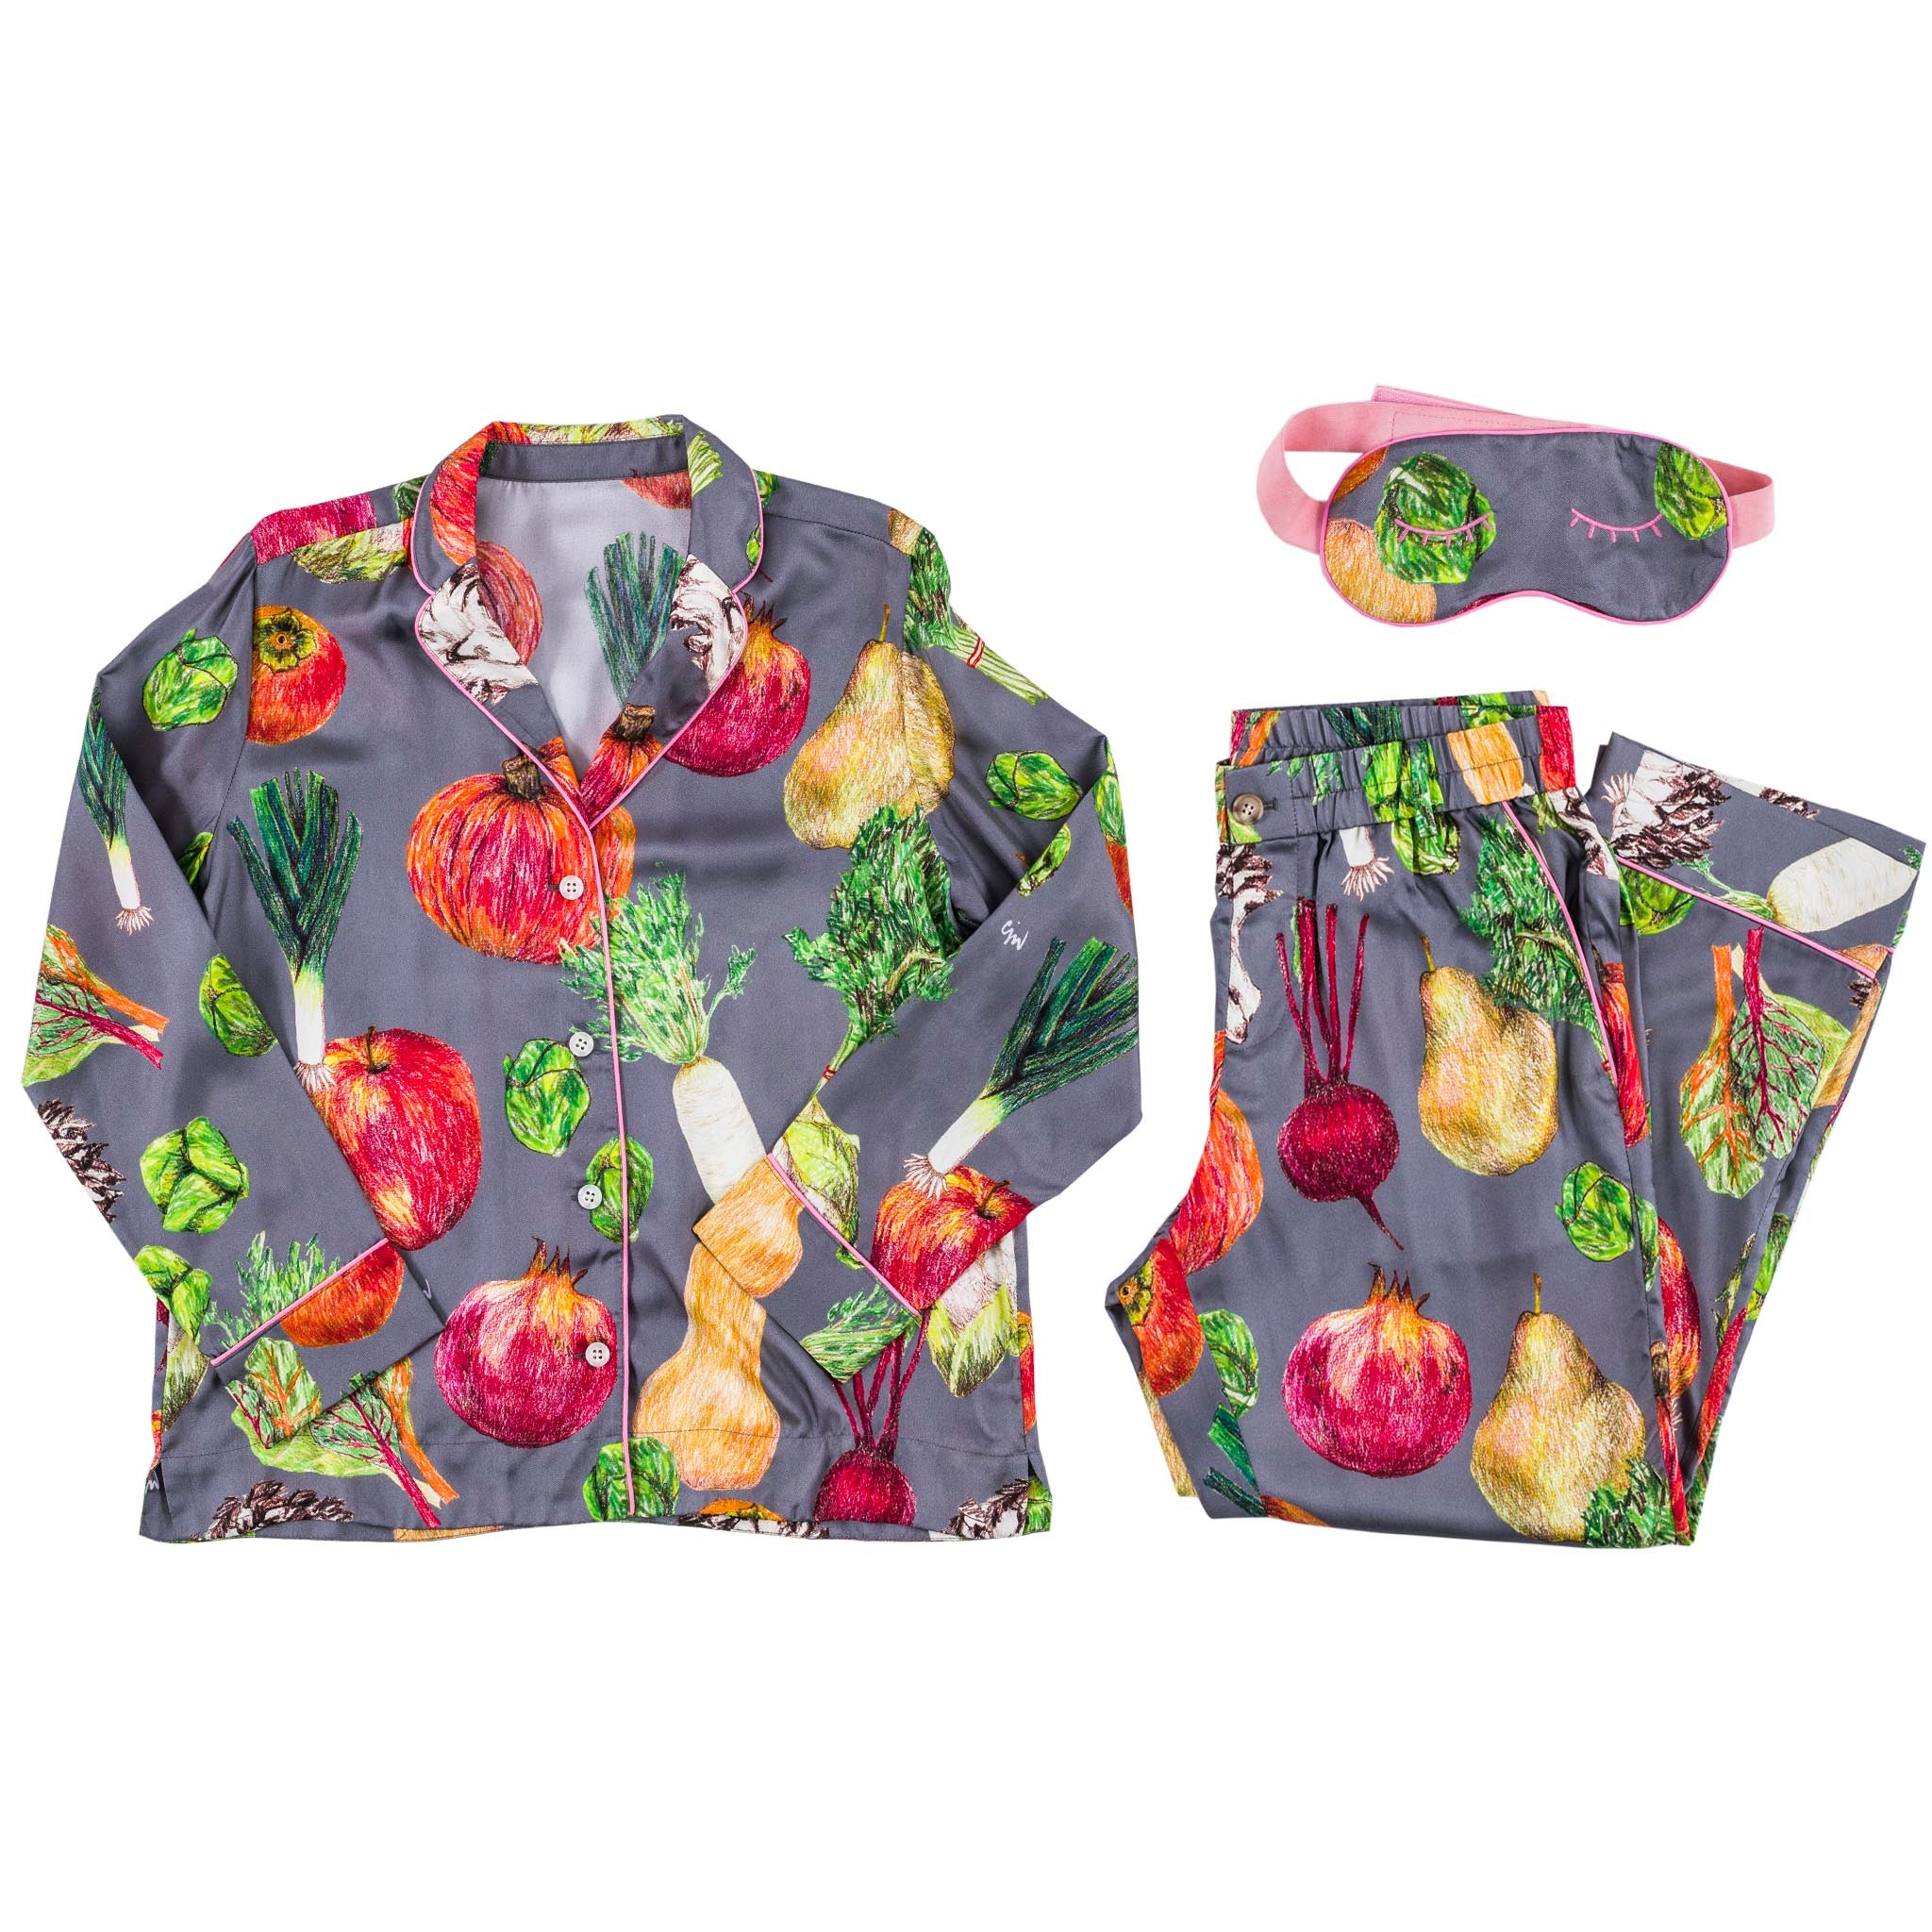 Winter Fruit and Vege Pajama Set